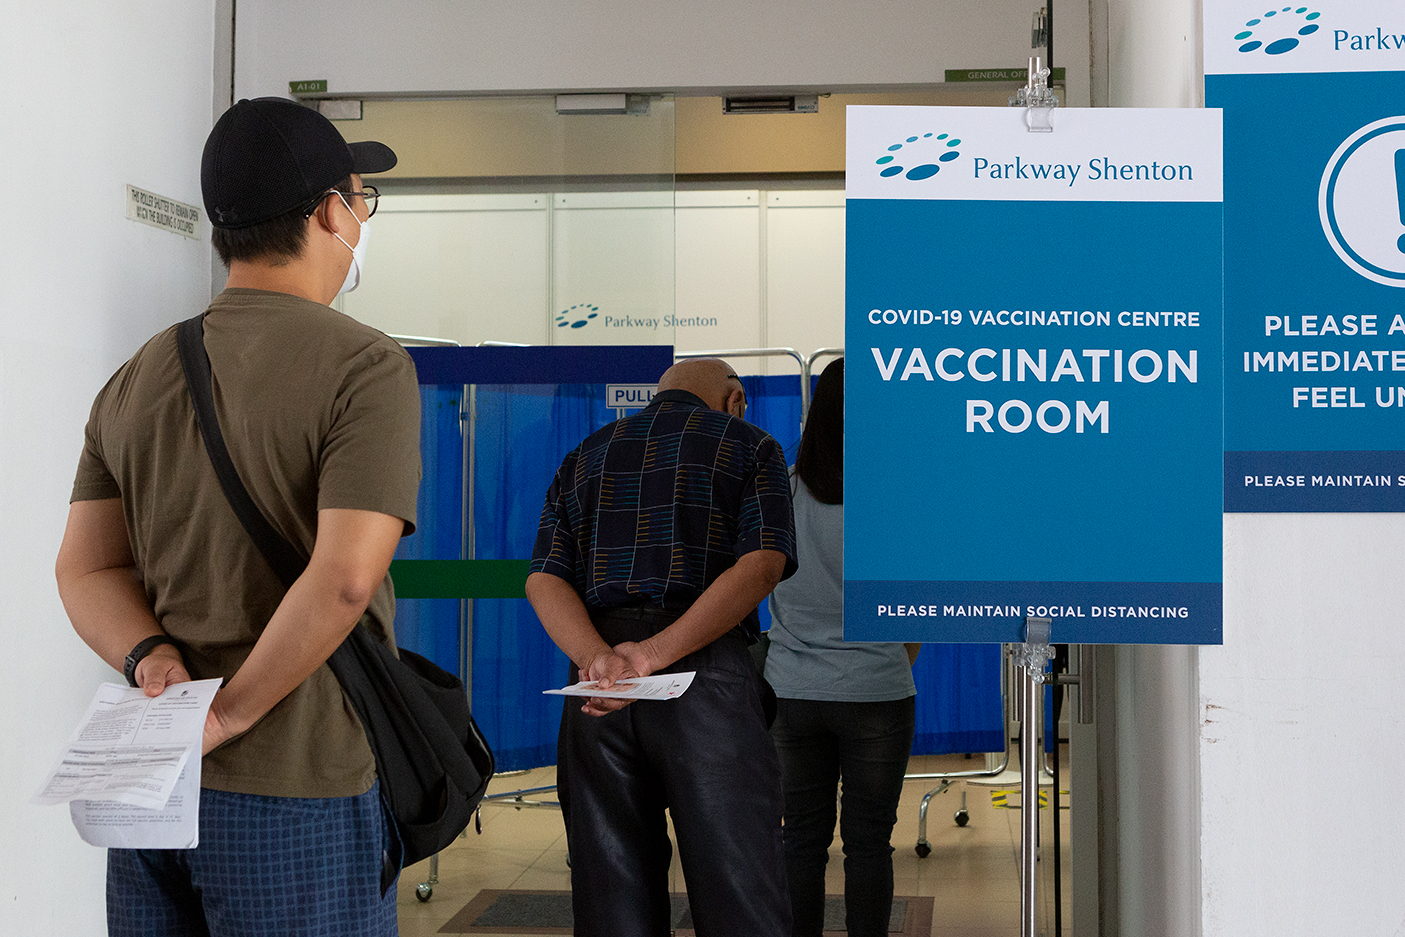 People in Singapore can choose Pfizer or Moderna shots at vaccination centres: report